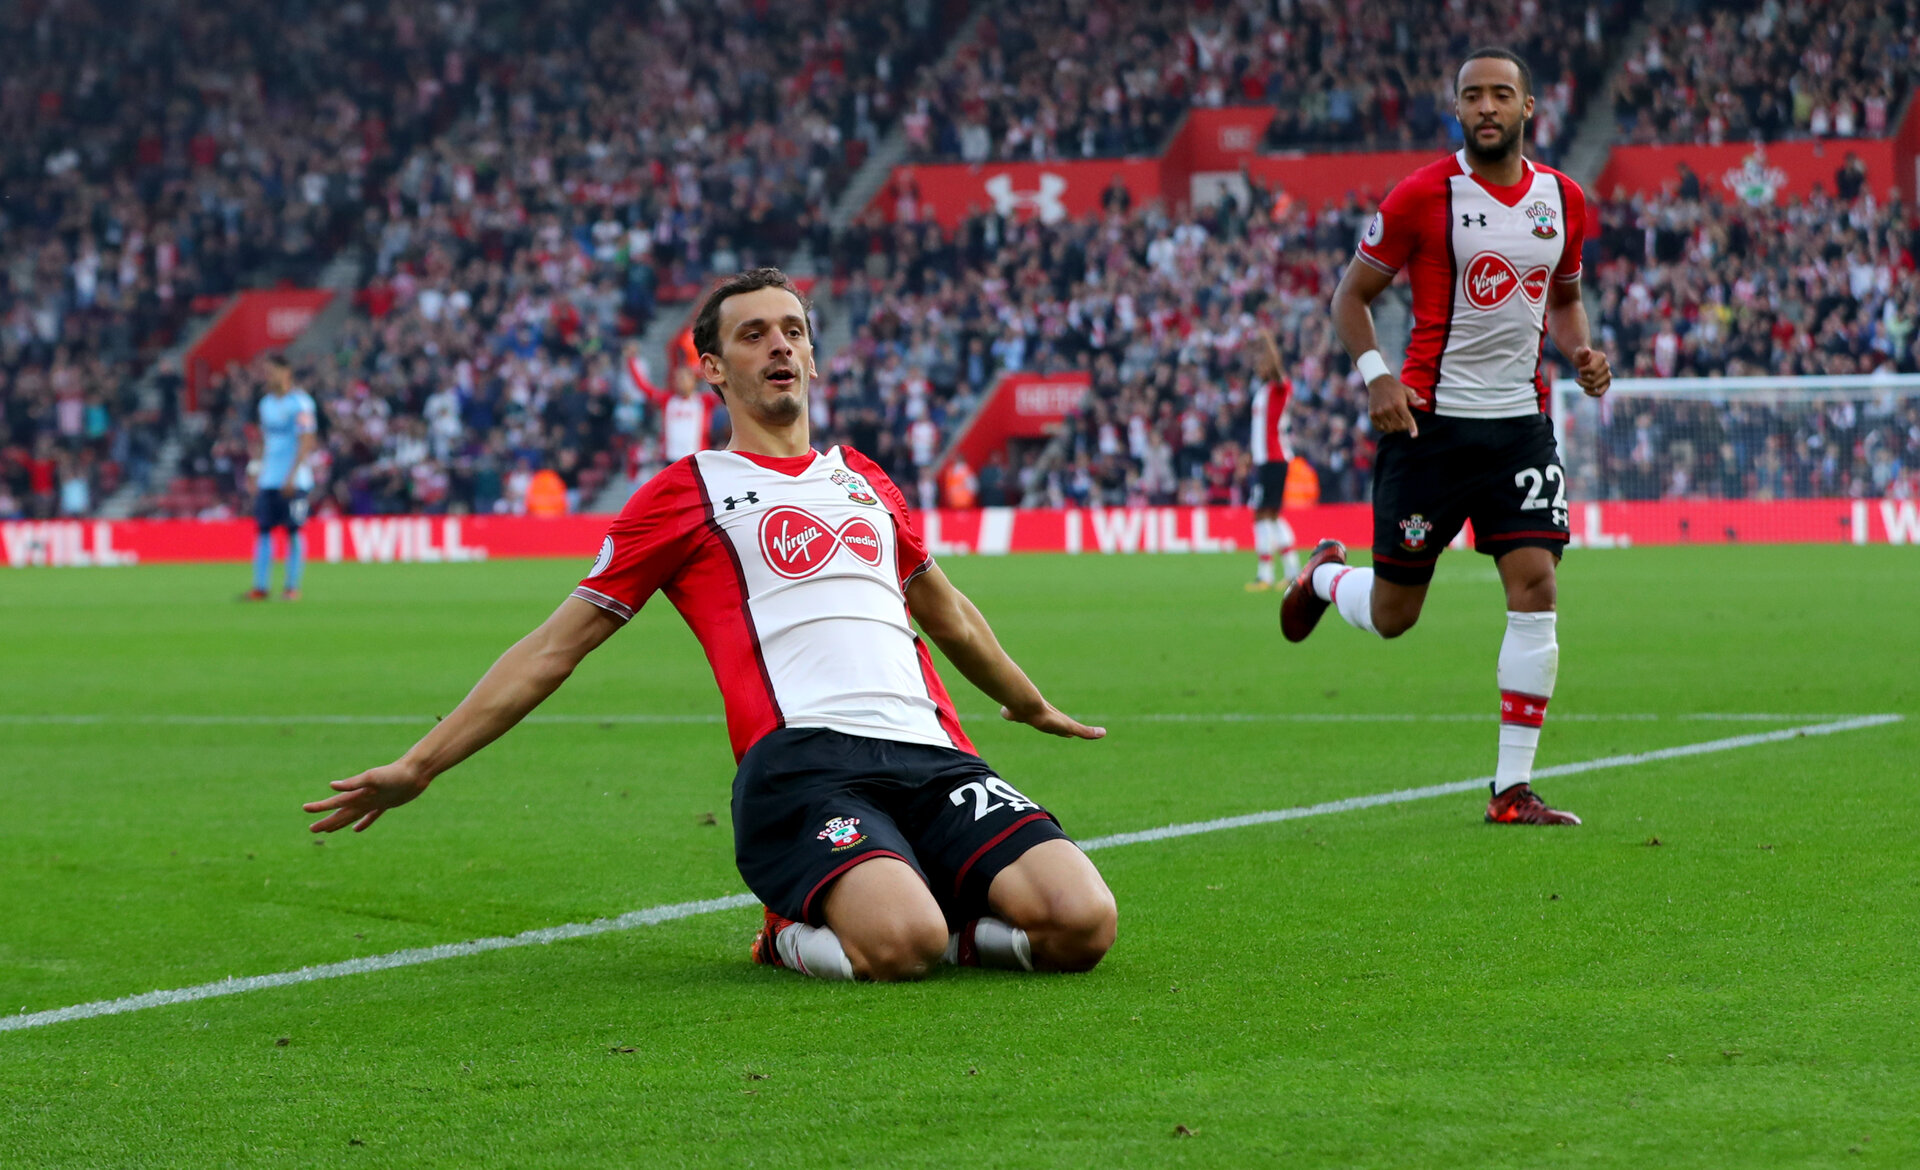 SOUTHAMPTON, ENGLAND - OCTOBER 15: Manolo Gabbiaidni celebrates during the Premier League match between Southampton and Newcastle United at St Mary's Stadium on October 15, 2017 in Southampton, England. (Photo by Matt Watson/Southampton FC via Getty Images)